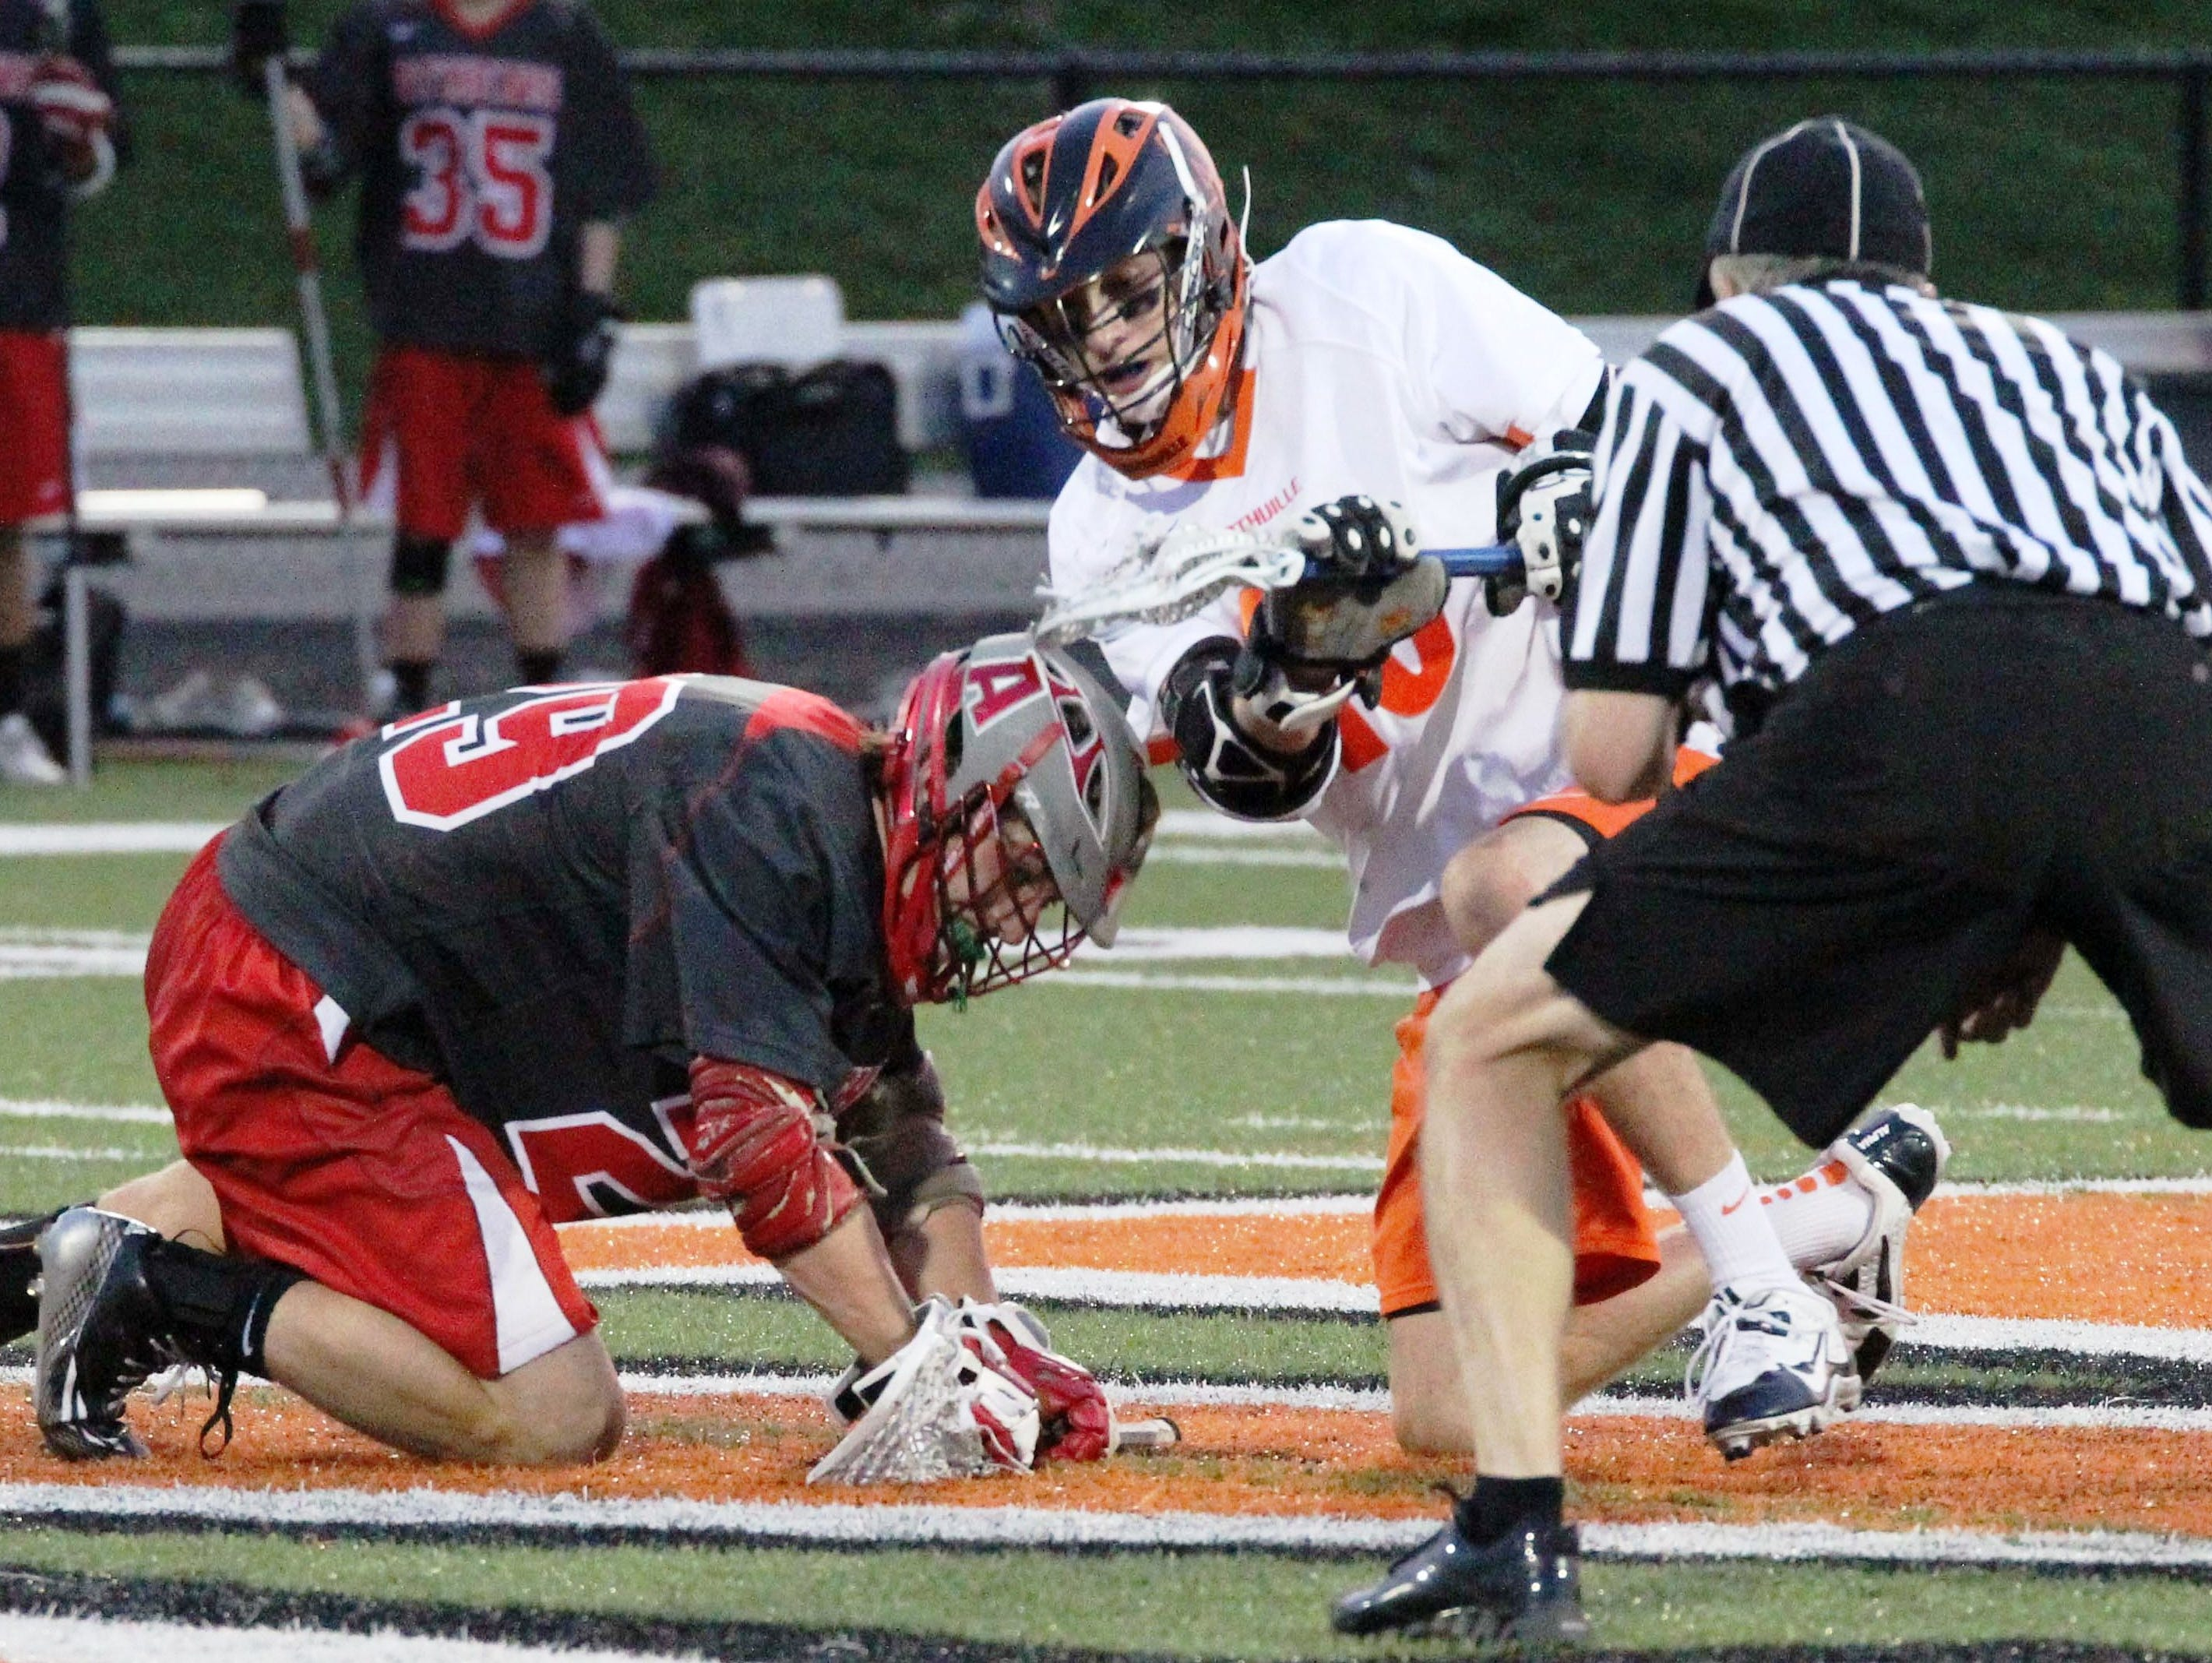 Northville senior David Morrissey (middle) wins the face-off in Thursday's win over Troy Athens.